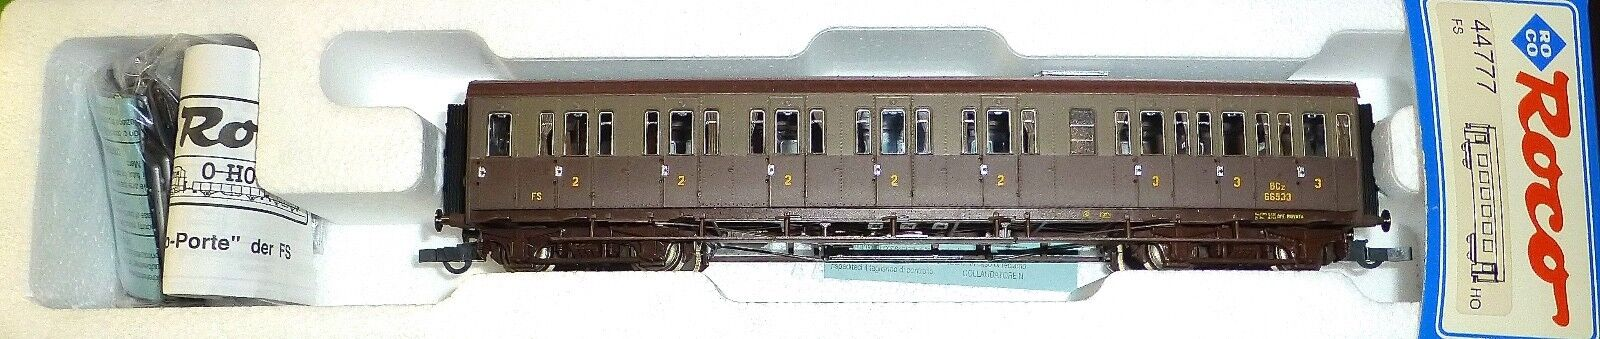 Roco 44777 FS 2 ° 3 ° CL. personwagen BCZ 66533 Carriage with compartments